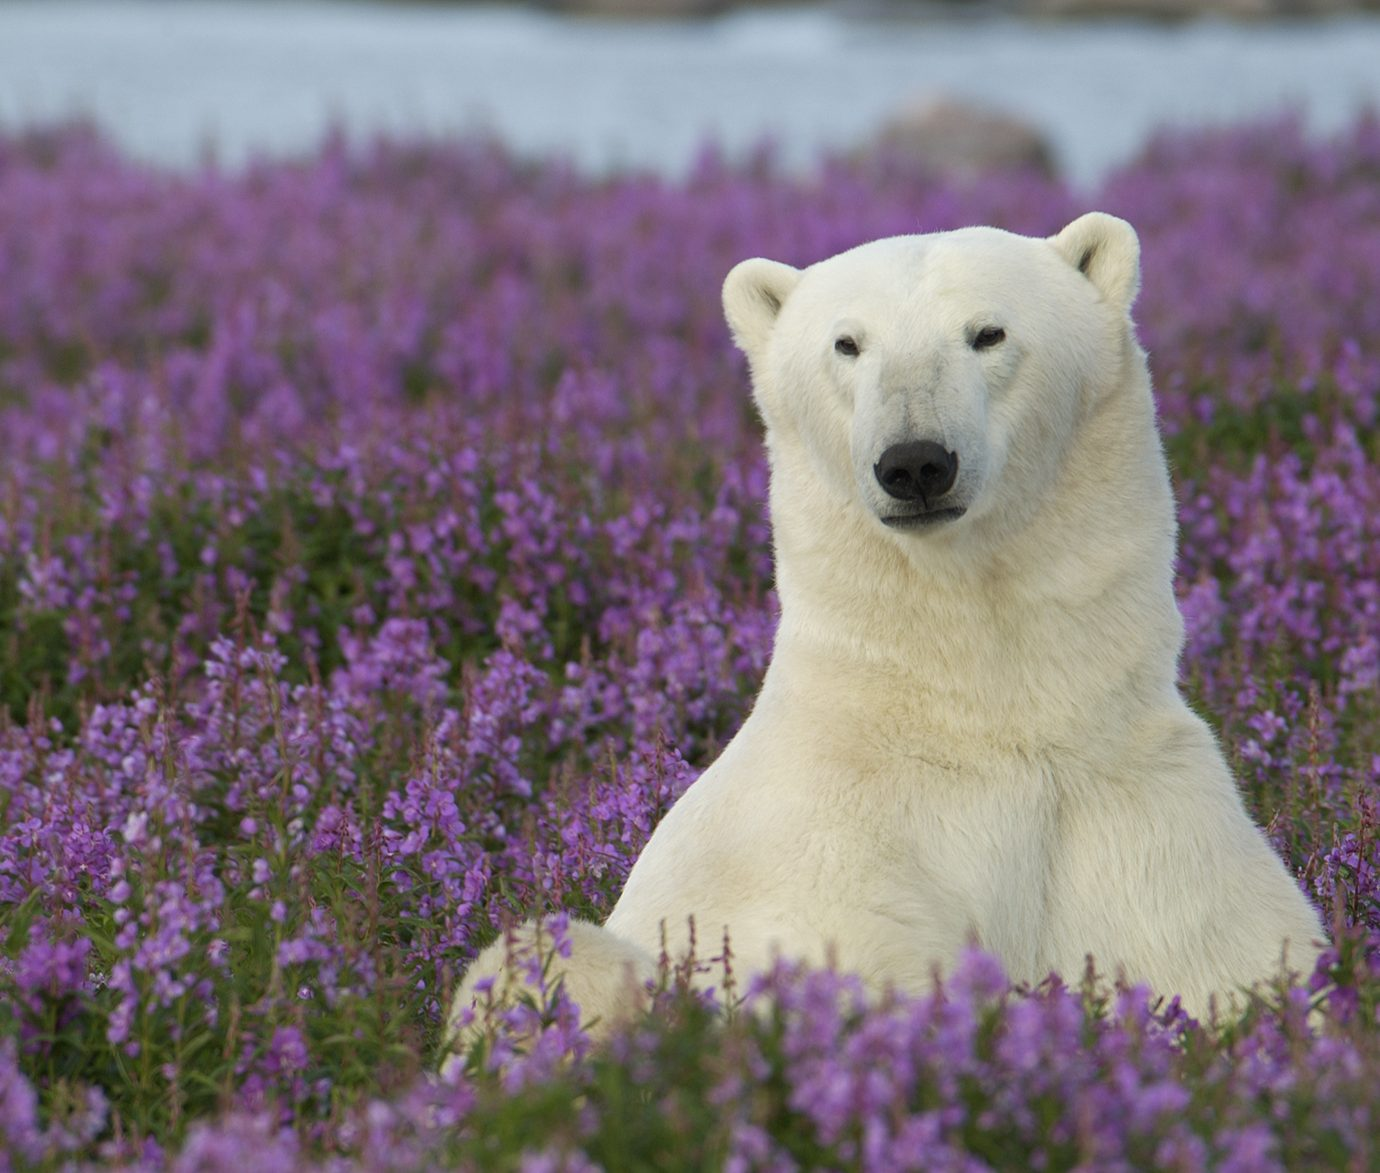 Polar Bear in a patch of flowers